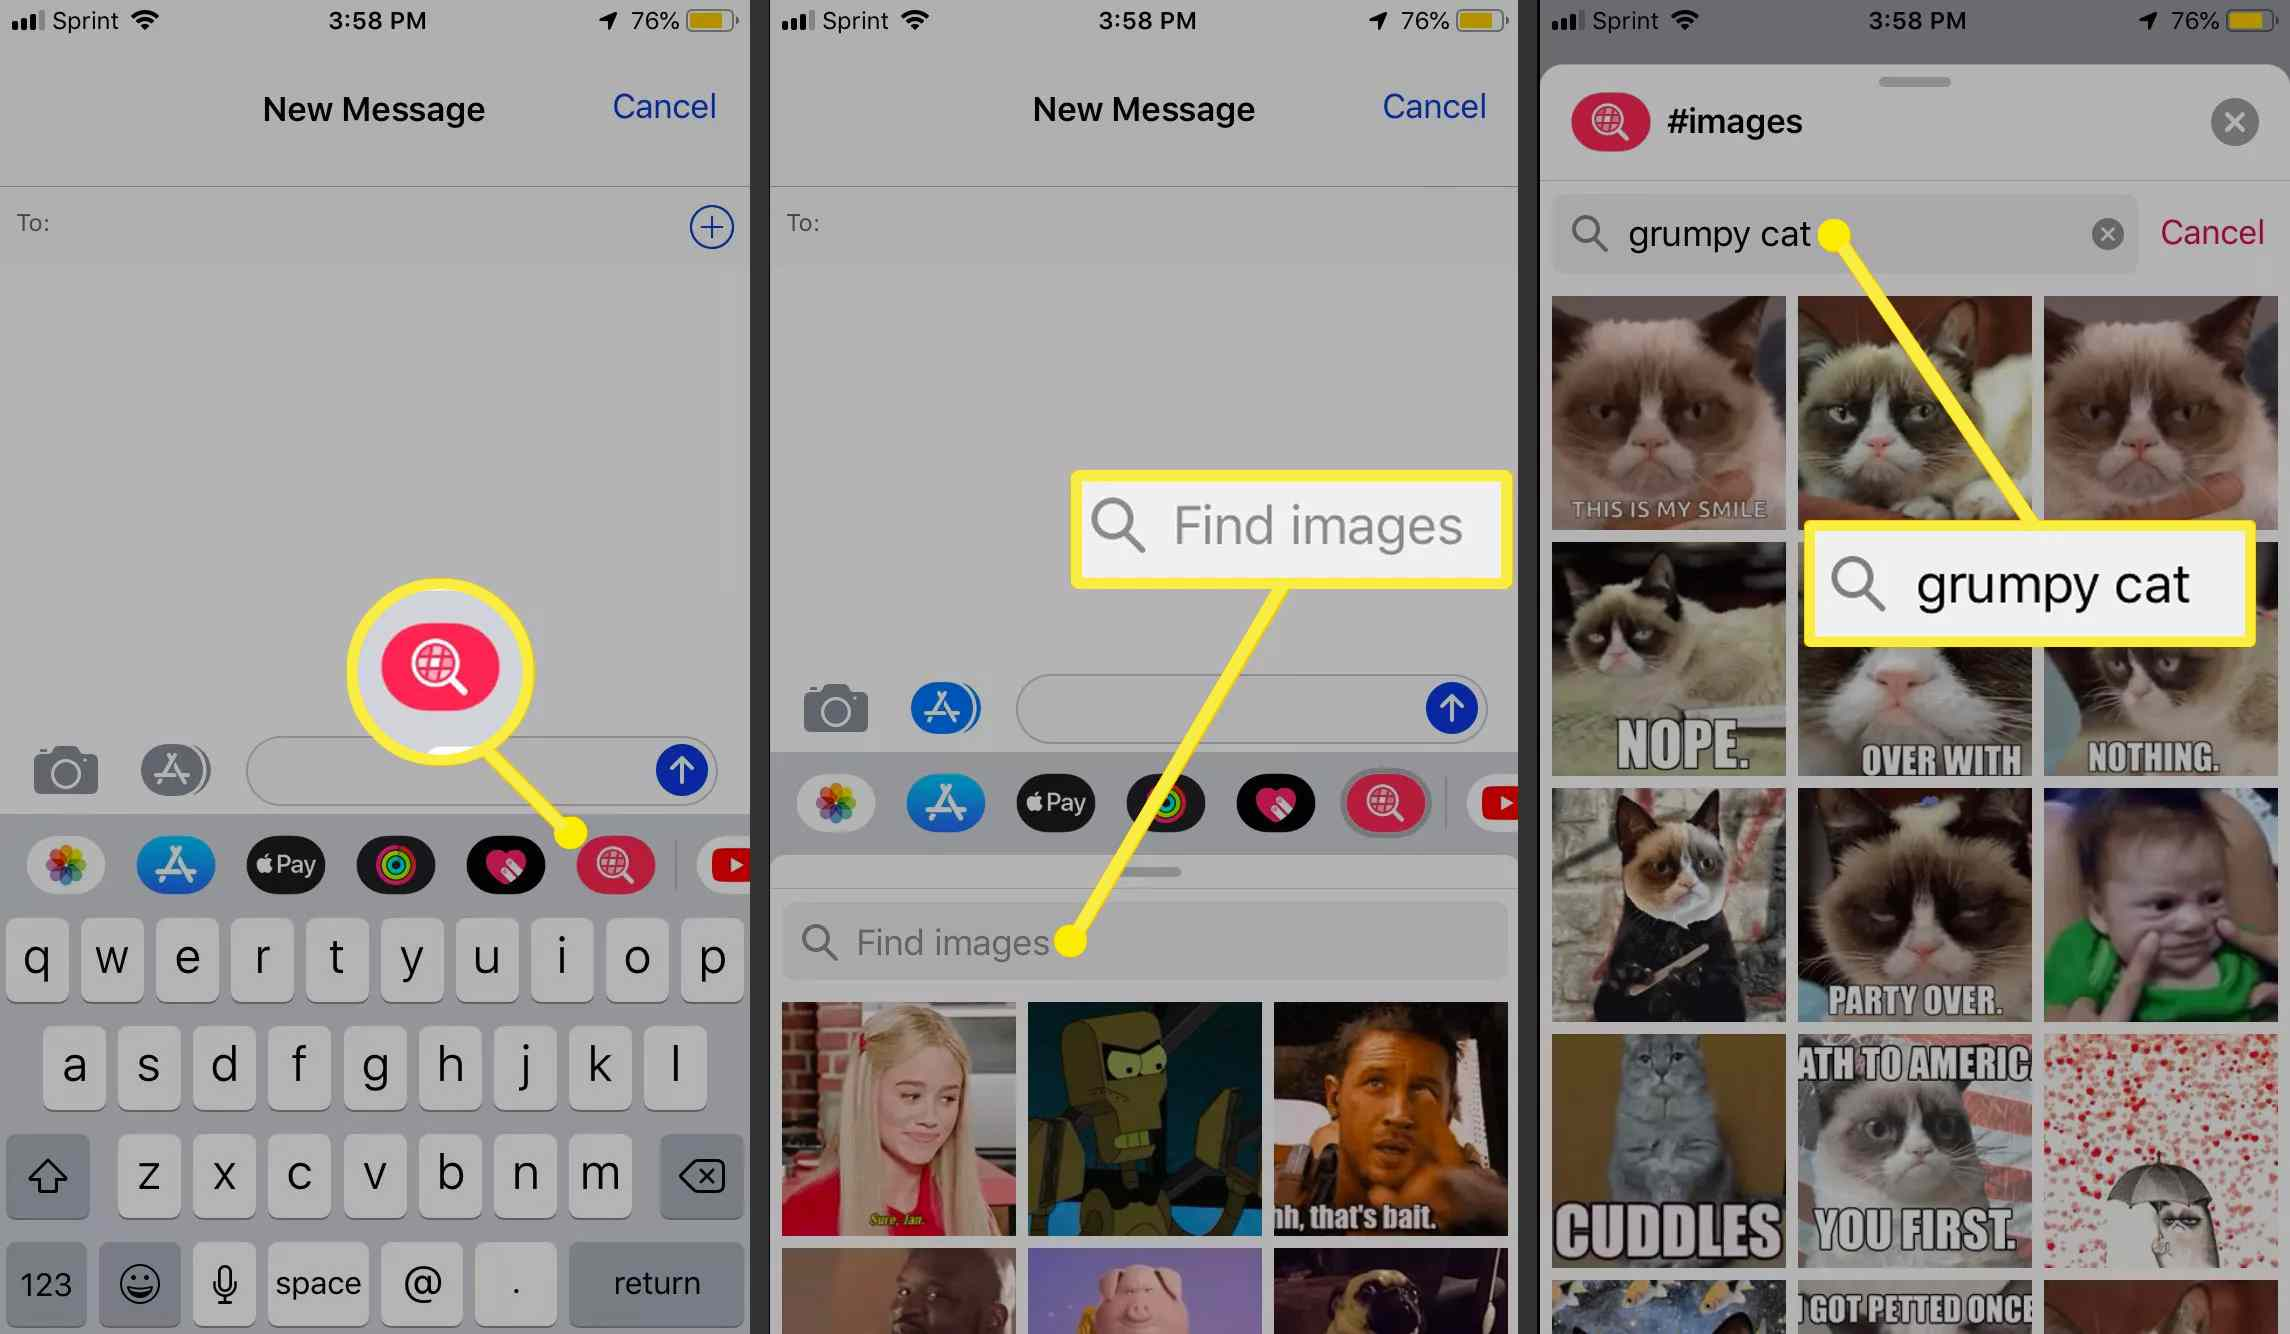 Location of a GIF in the iPhone Messages app